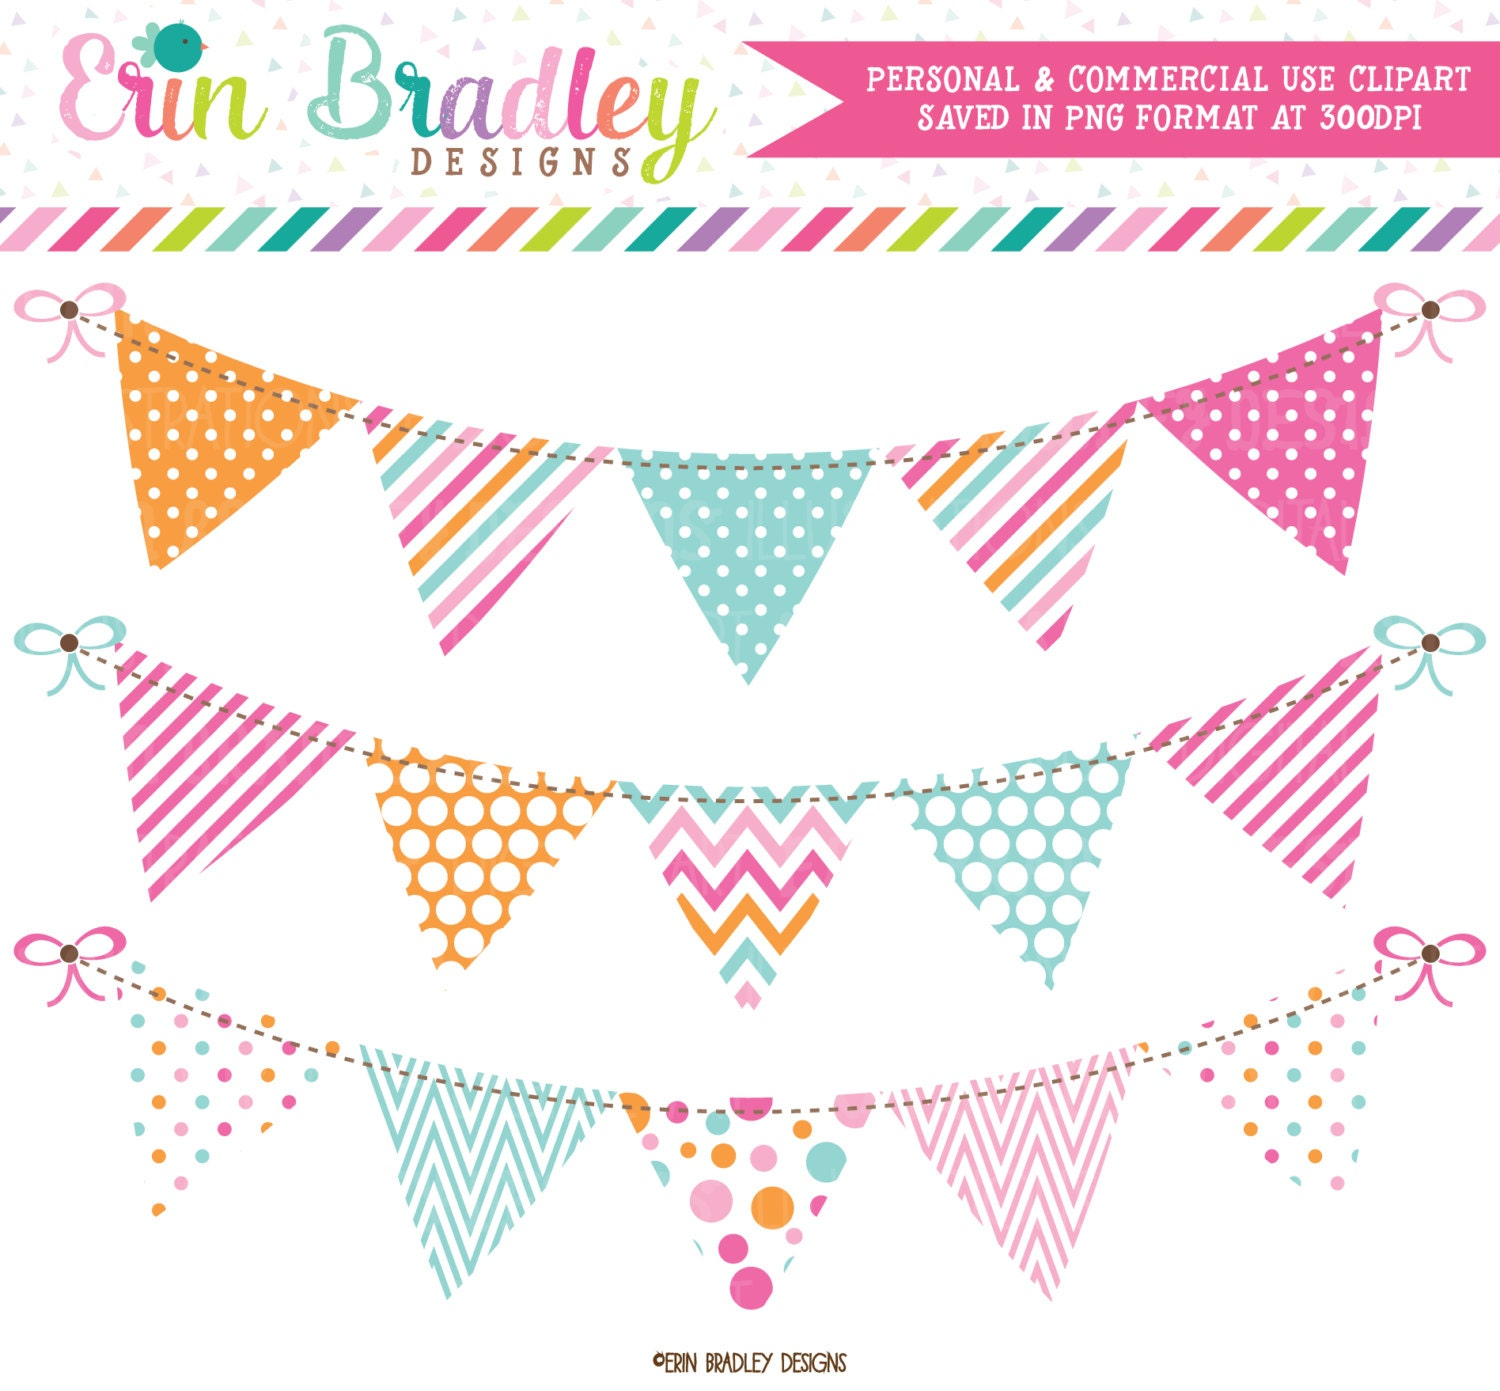 Clip Art Pennant Clipart pennant clipart etsy pink blue orange bunting banner flag graphics polka dots stripes chevron clip art instant download